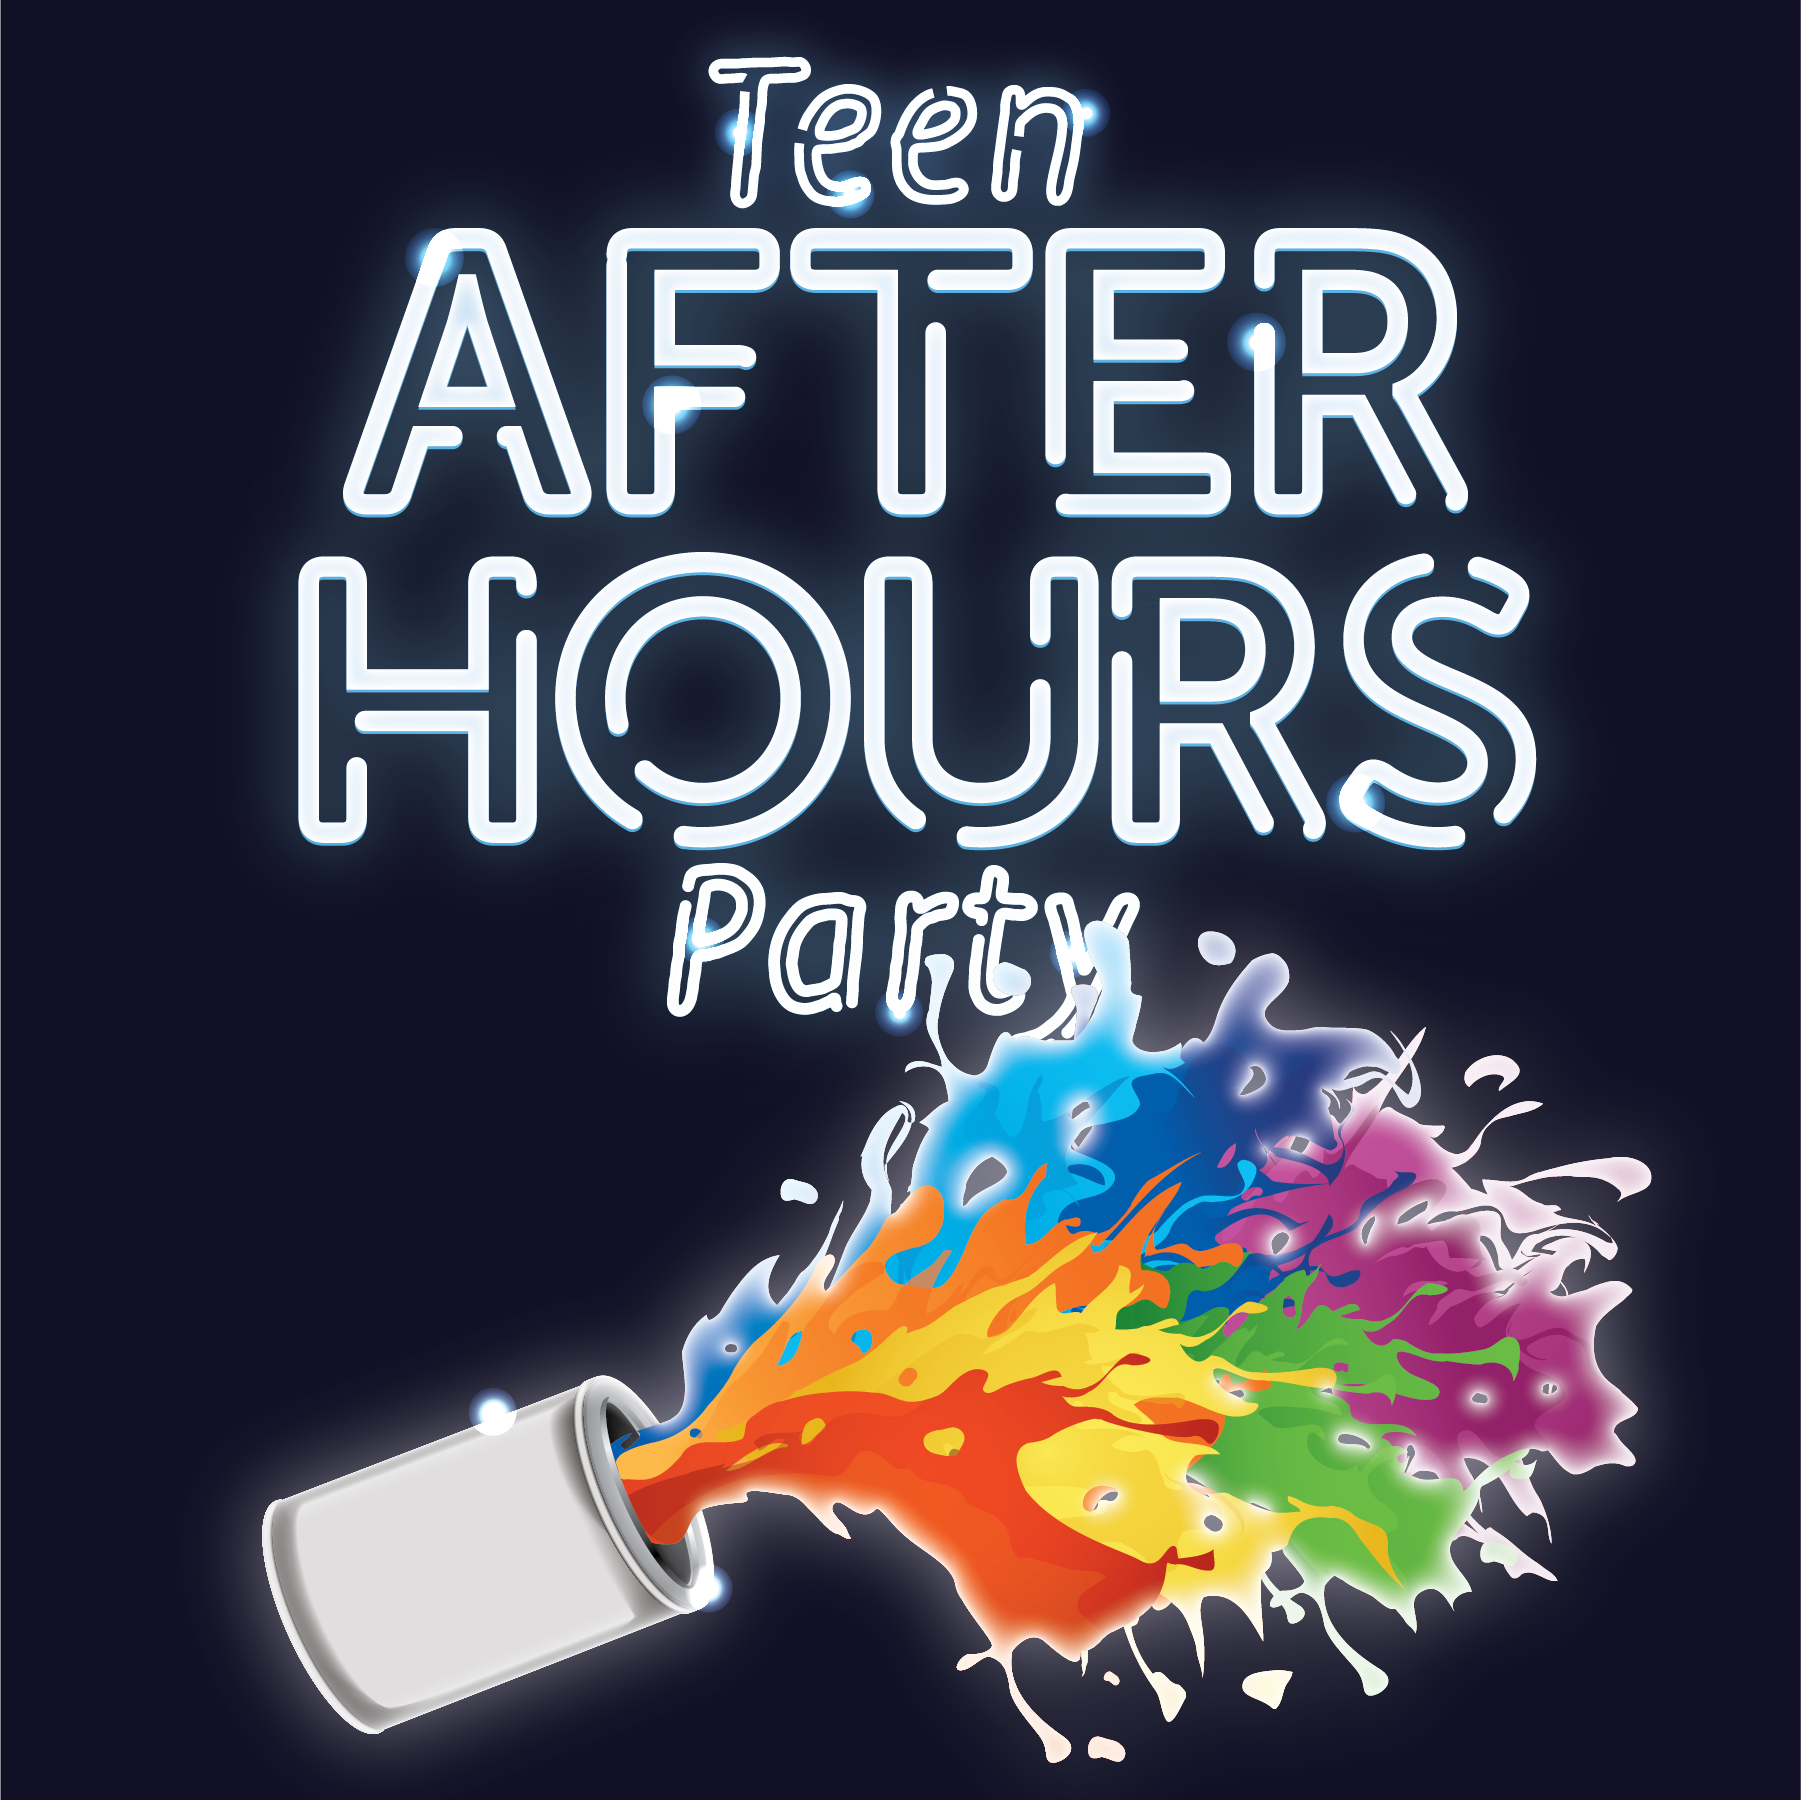 Teen After Hours: Paint Party